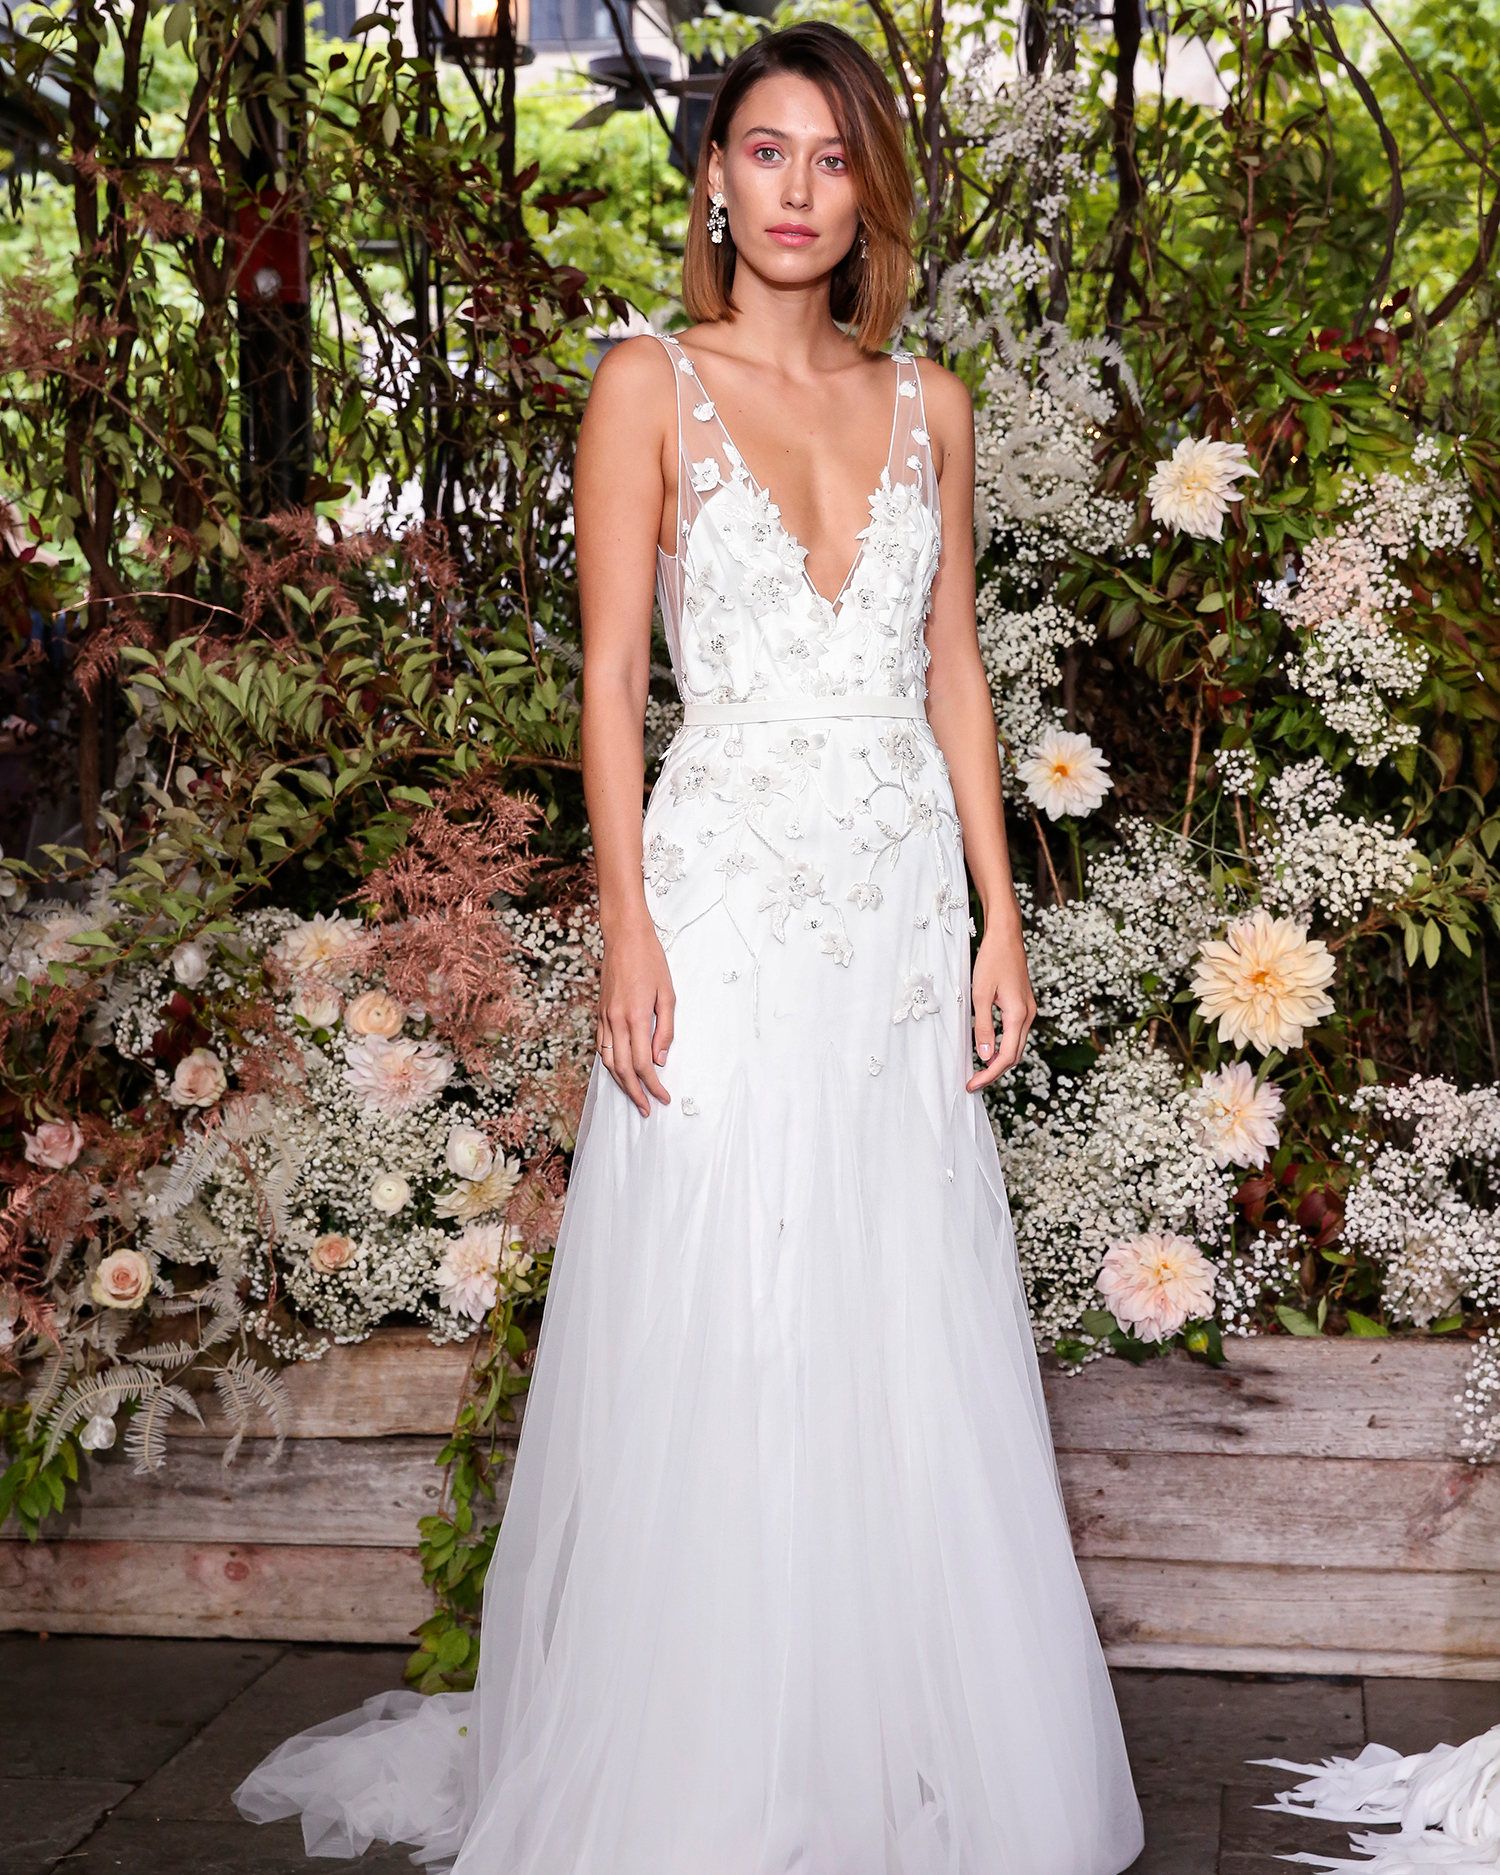 alexandra grecco wedding dress illusion straps applique a-line